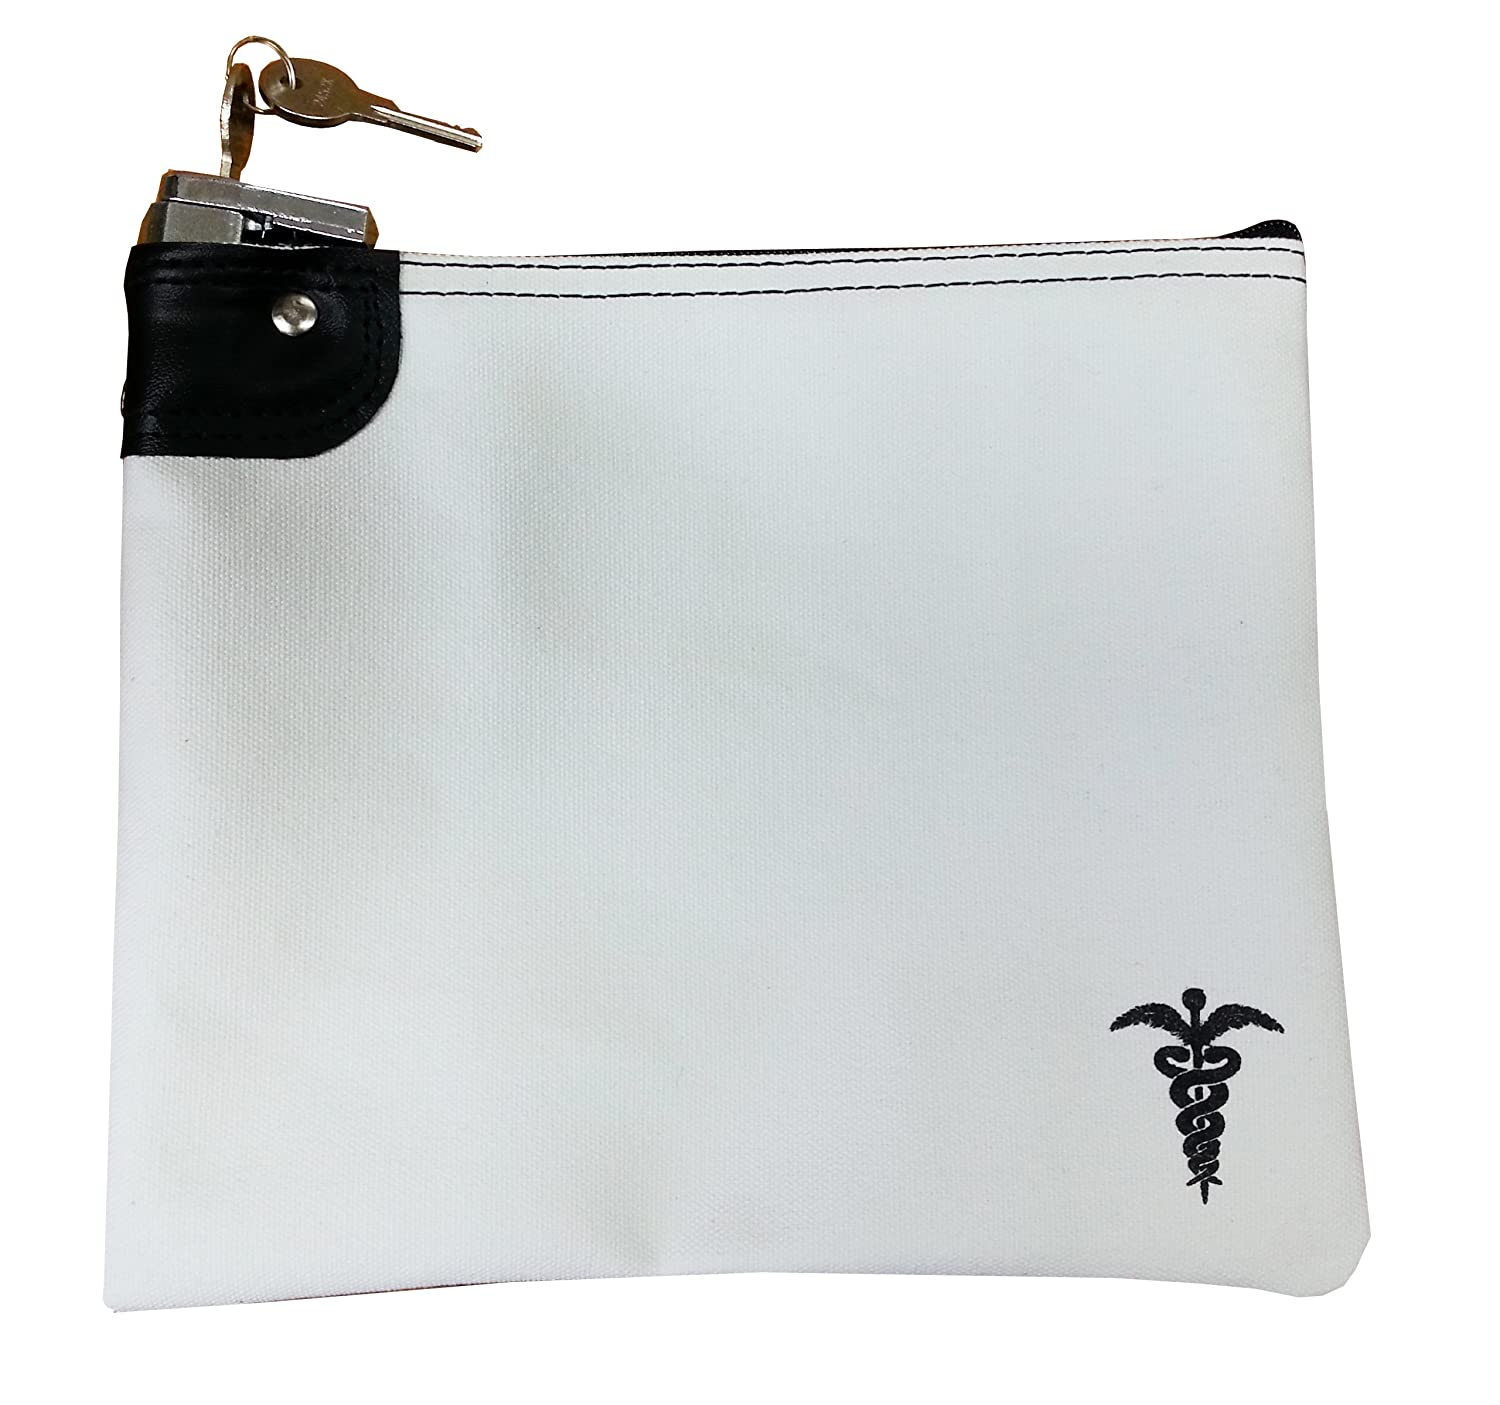 Medication Bag Heavy Canvas Standard Keyed Lock Storage Case White